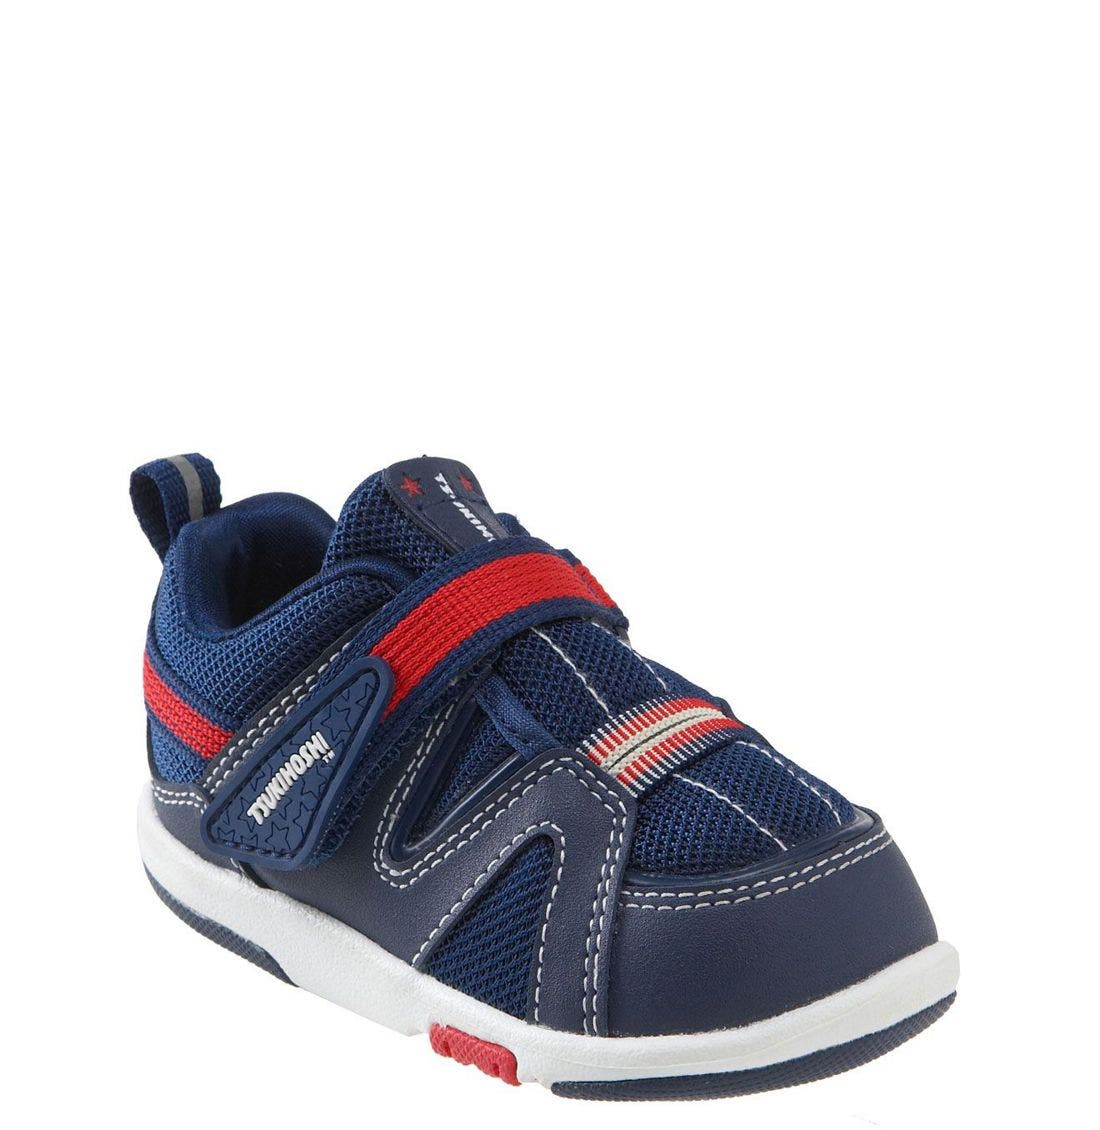 Alternate Image 1 Selected - Tsukihoshi 'Baby 03' Sneaker (Walker)